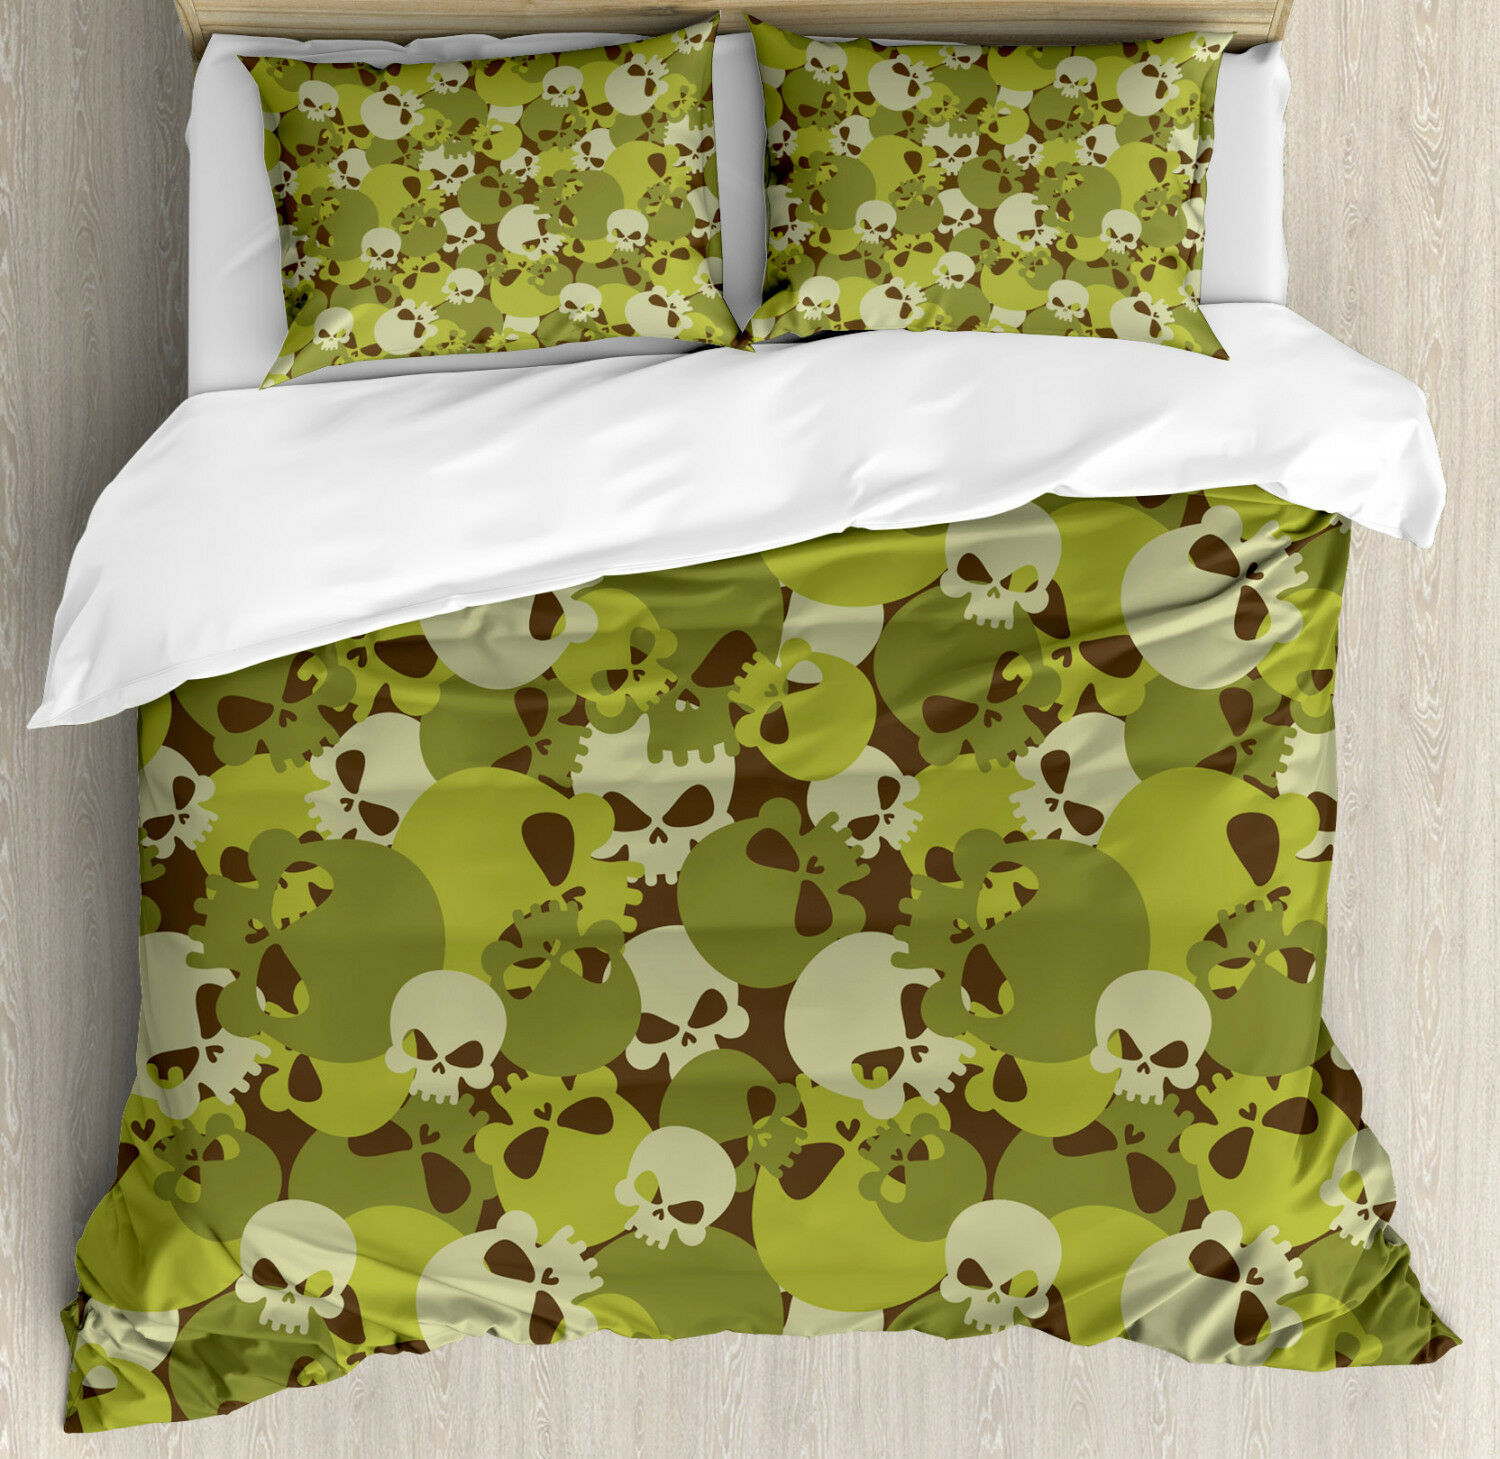 Skull Duvet Cover Set with Pillow Shams Scary Concept Design Print